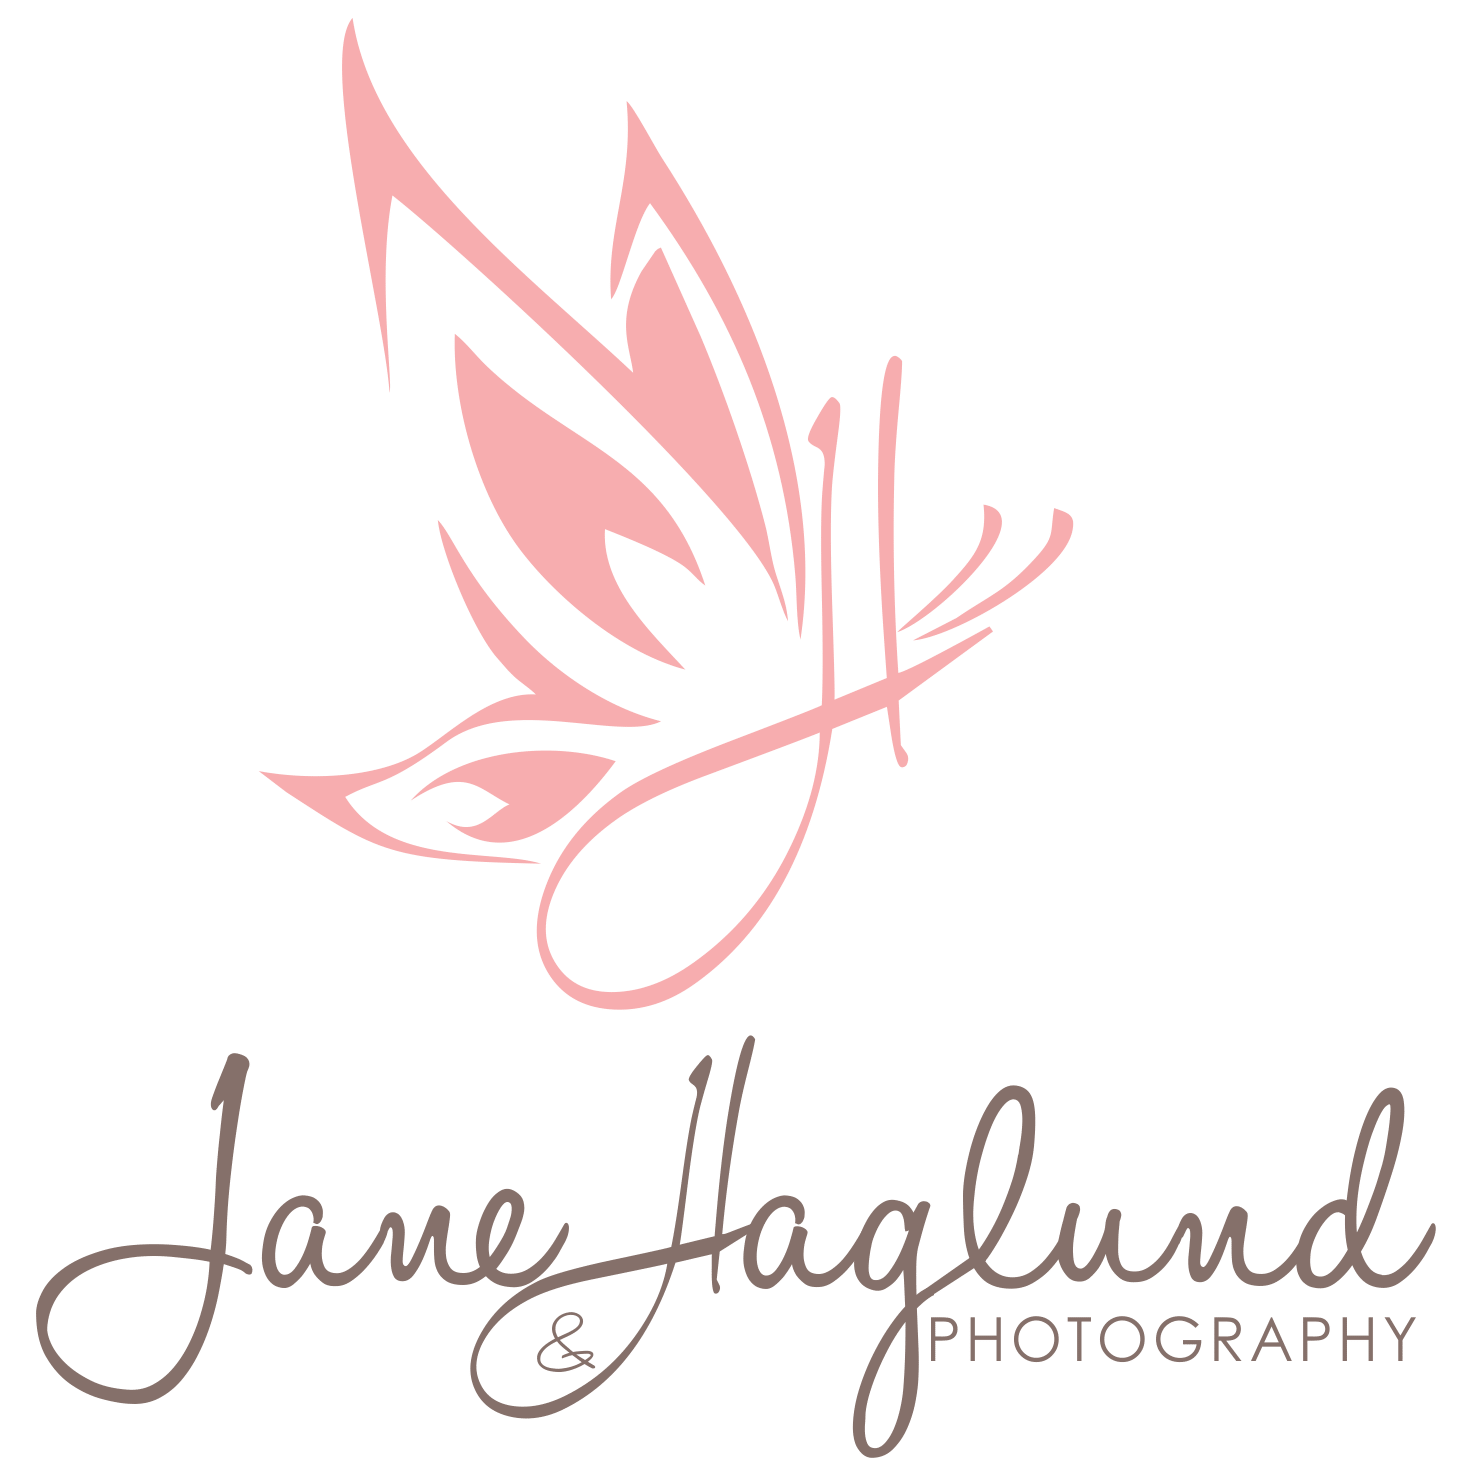 Jane (&) Haglund Photography